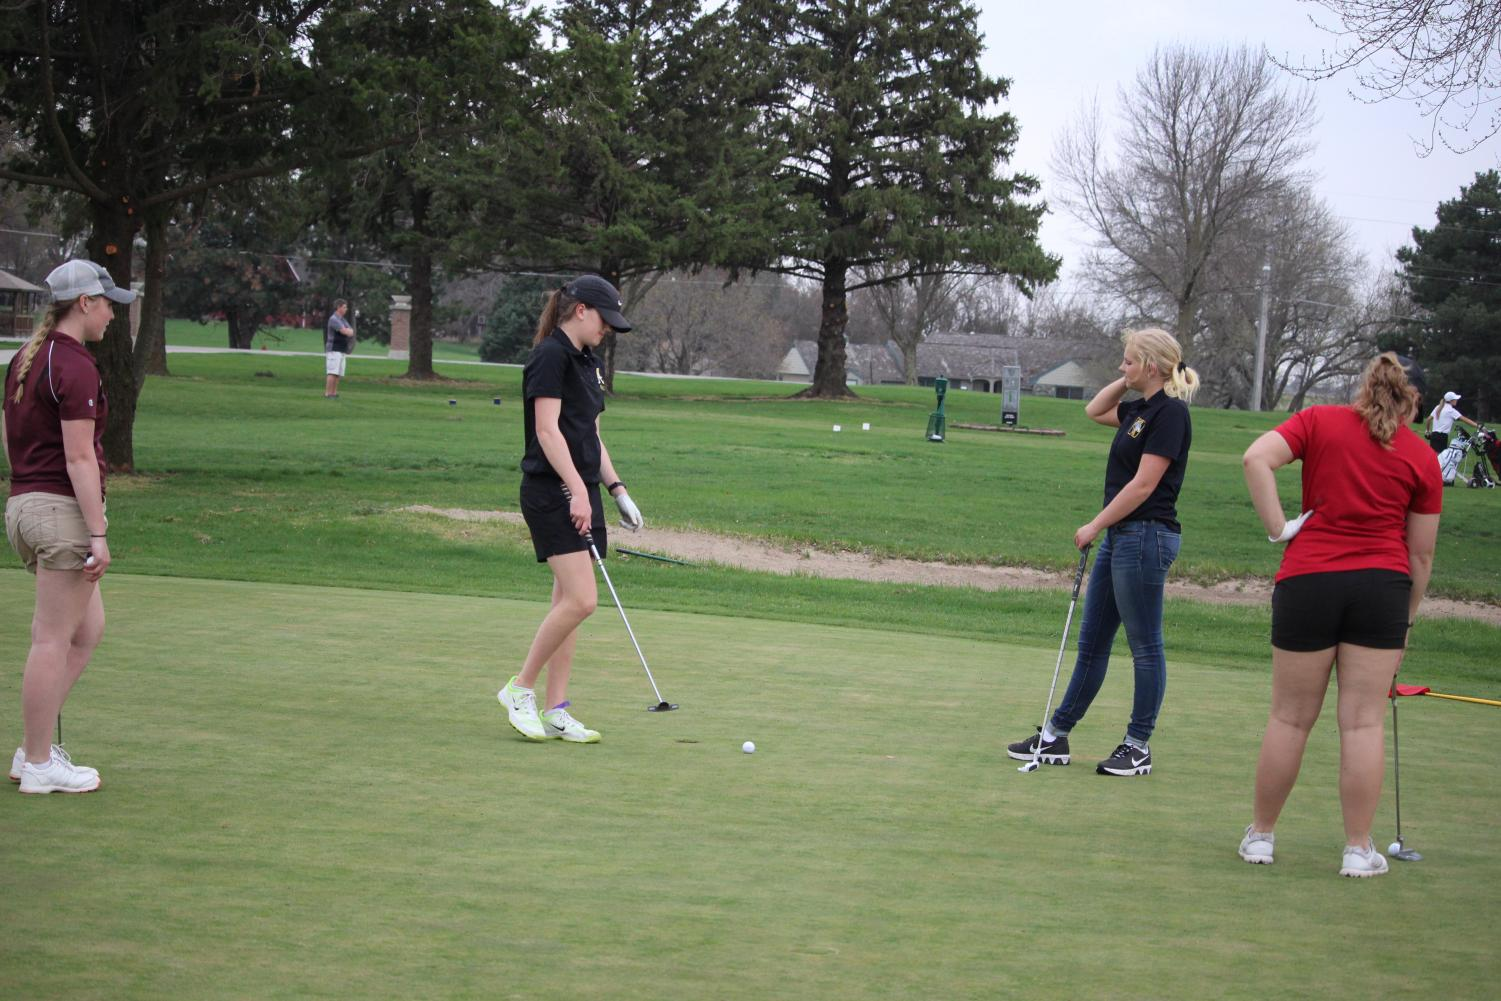 Sophomore Anna Wieser putts the ball on the green. This is Wieser's second year in golf.